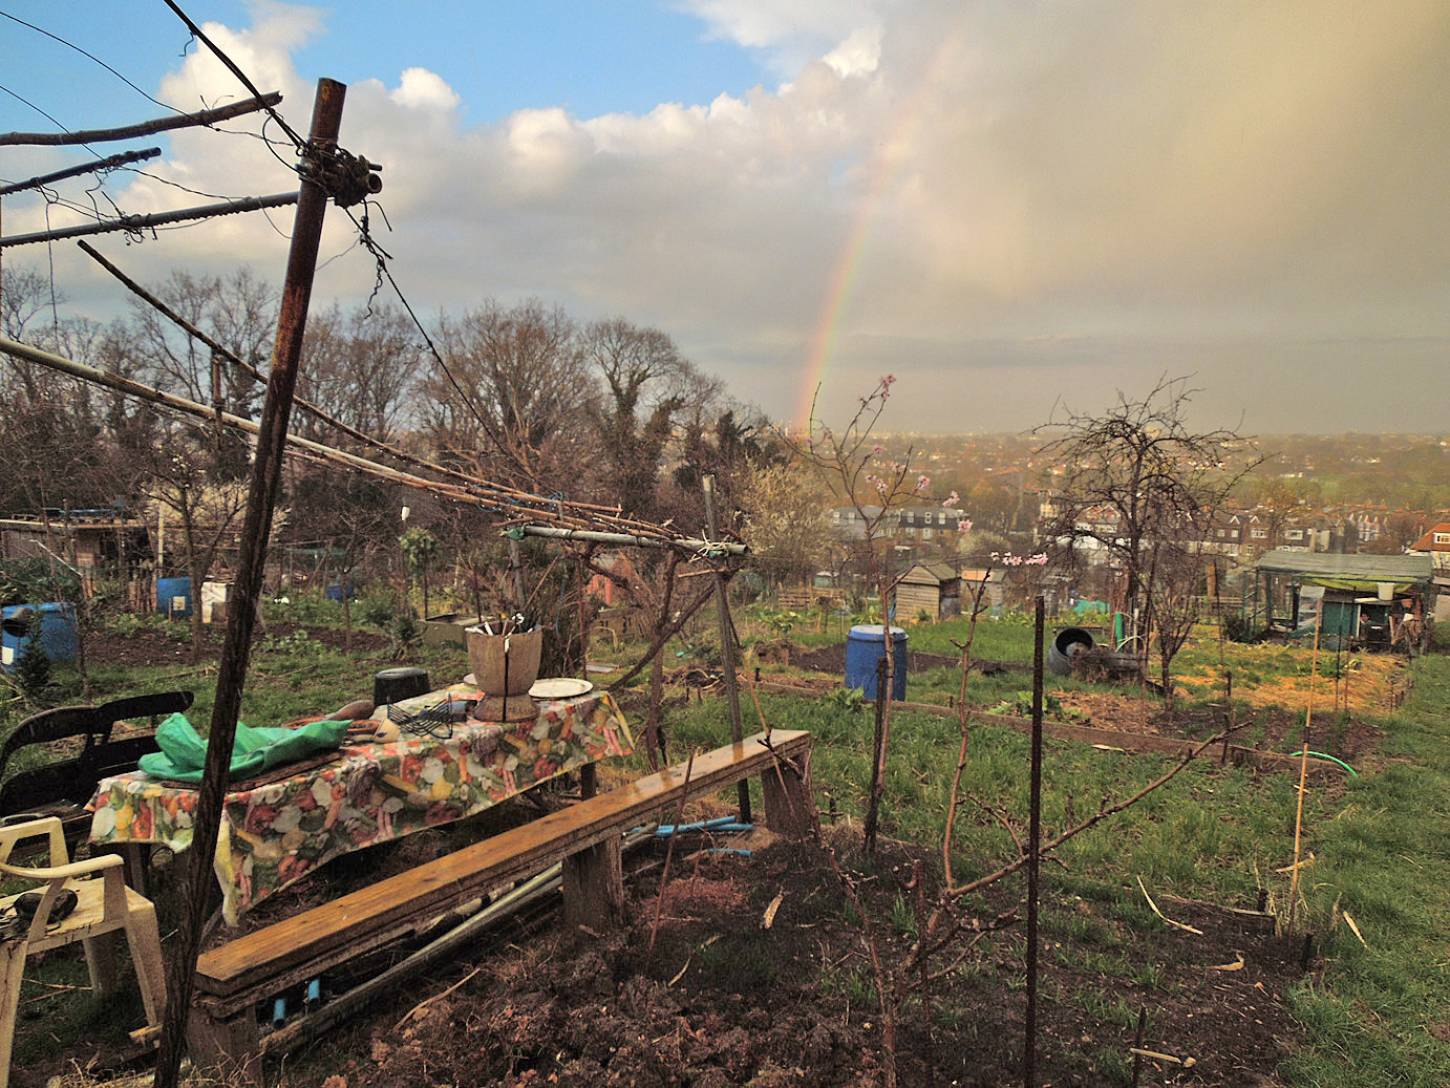 early Spring Rosendale Allotments - 6:45pm&nbsp;24<sup>th</sup>&nbsp;Mar.&nbsp;'15